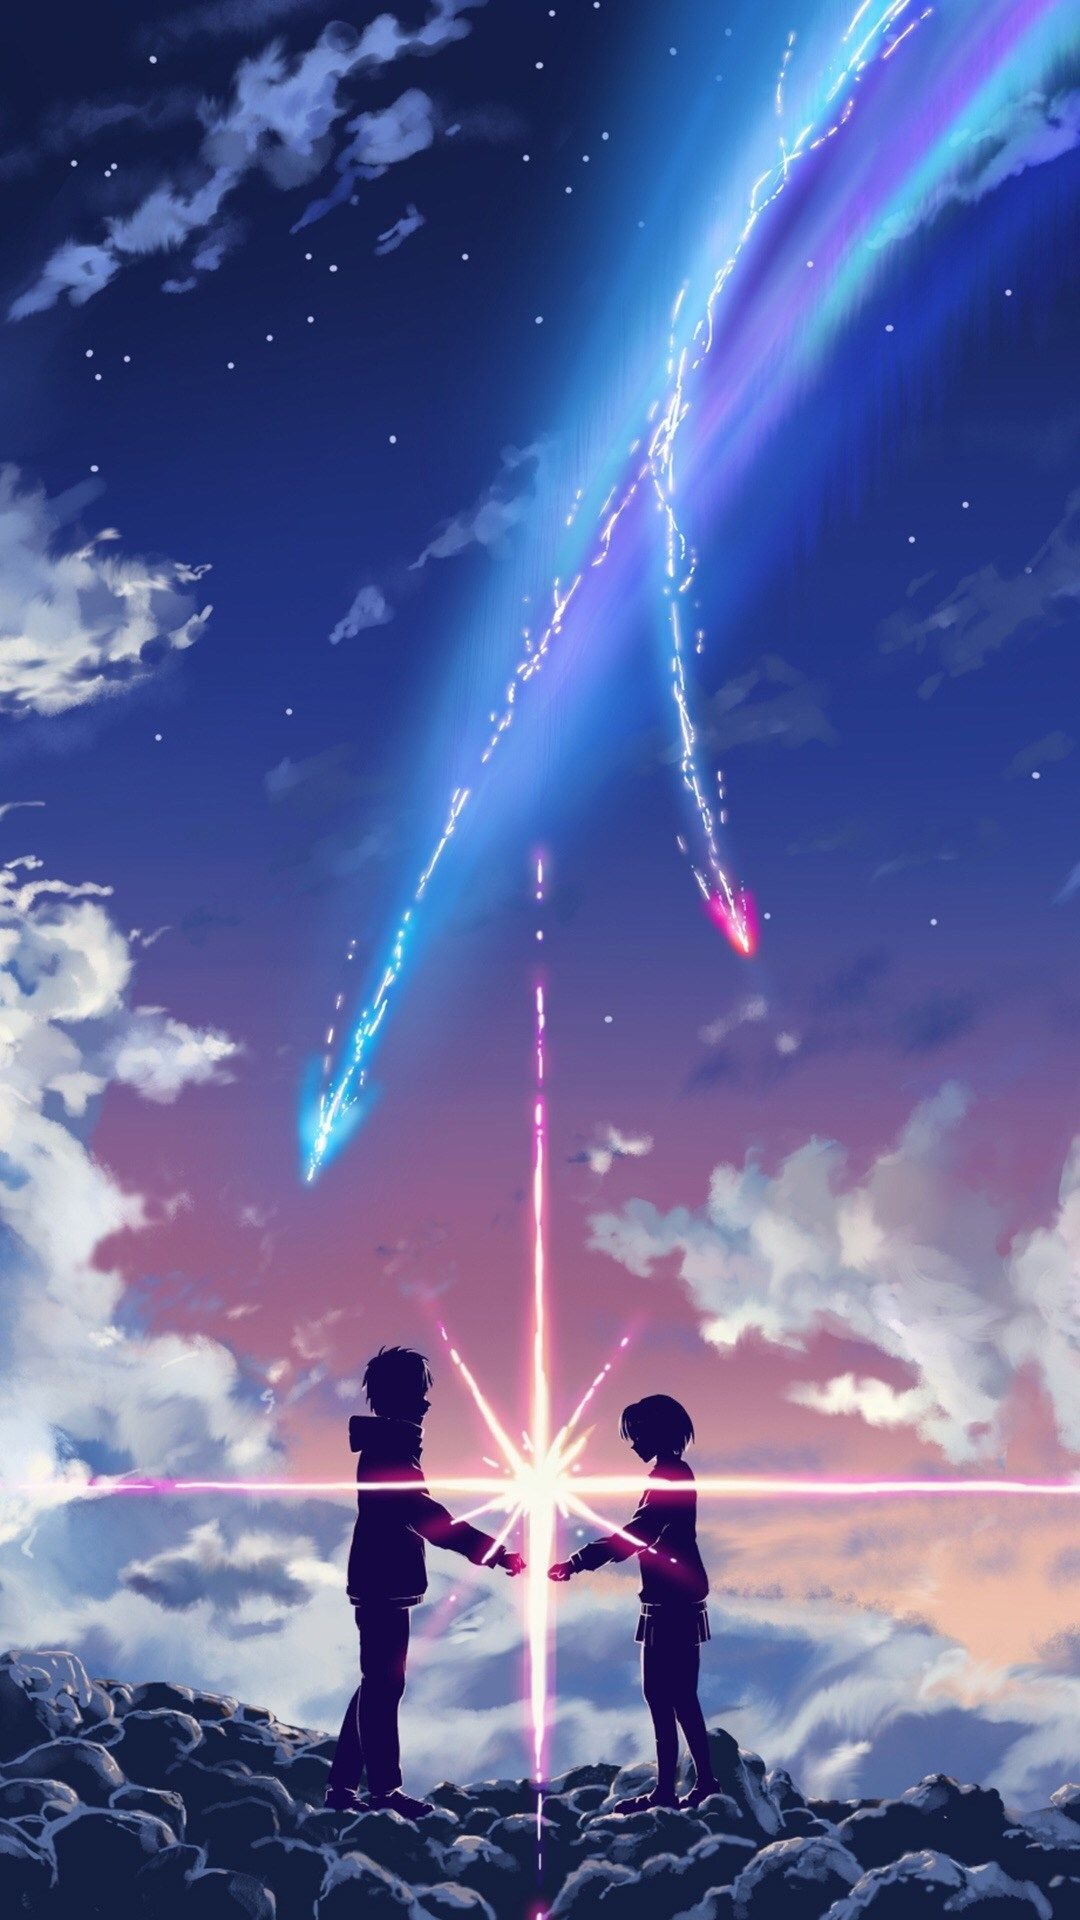 Pin By Anny Mcyolo On Anime Your Name Movie Anime Wallpaper Download Anime Backgrounds Wallpapers